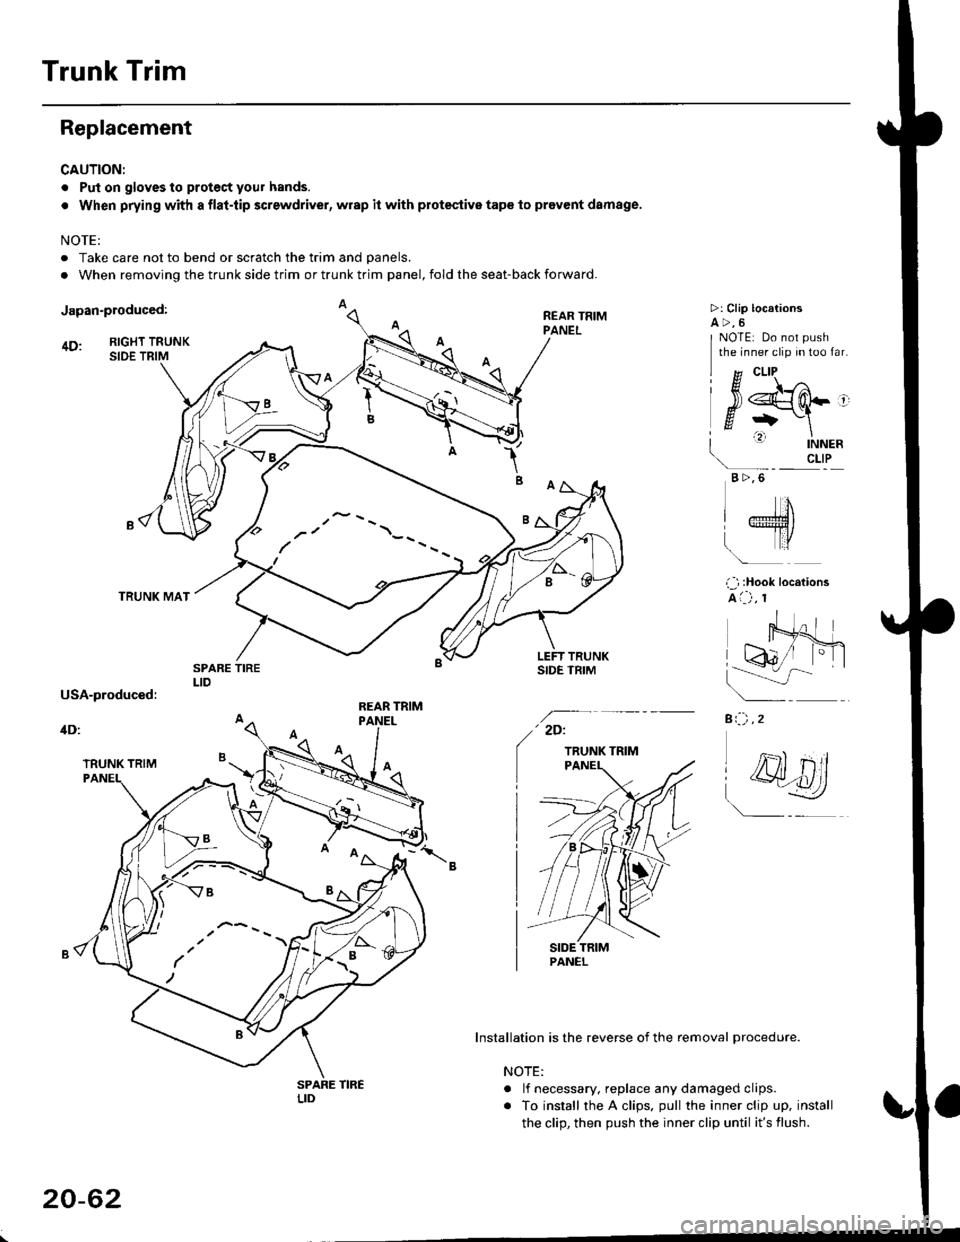 HONDA CIVIC 1997 6.G Workshop Manual (2189 Pages), Page